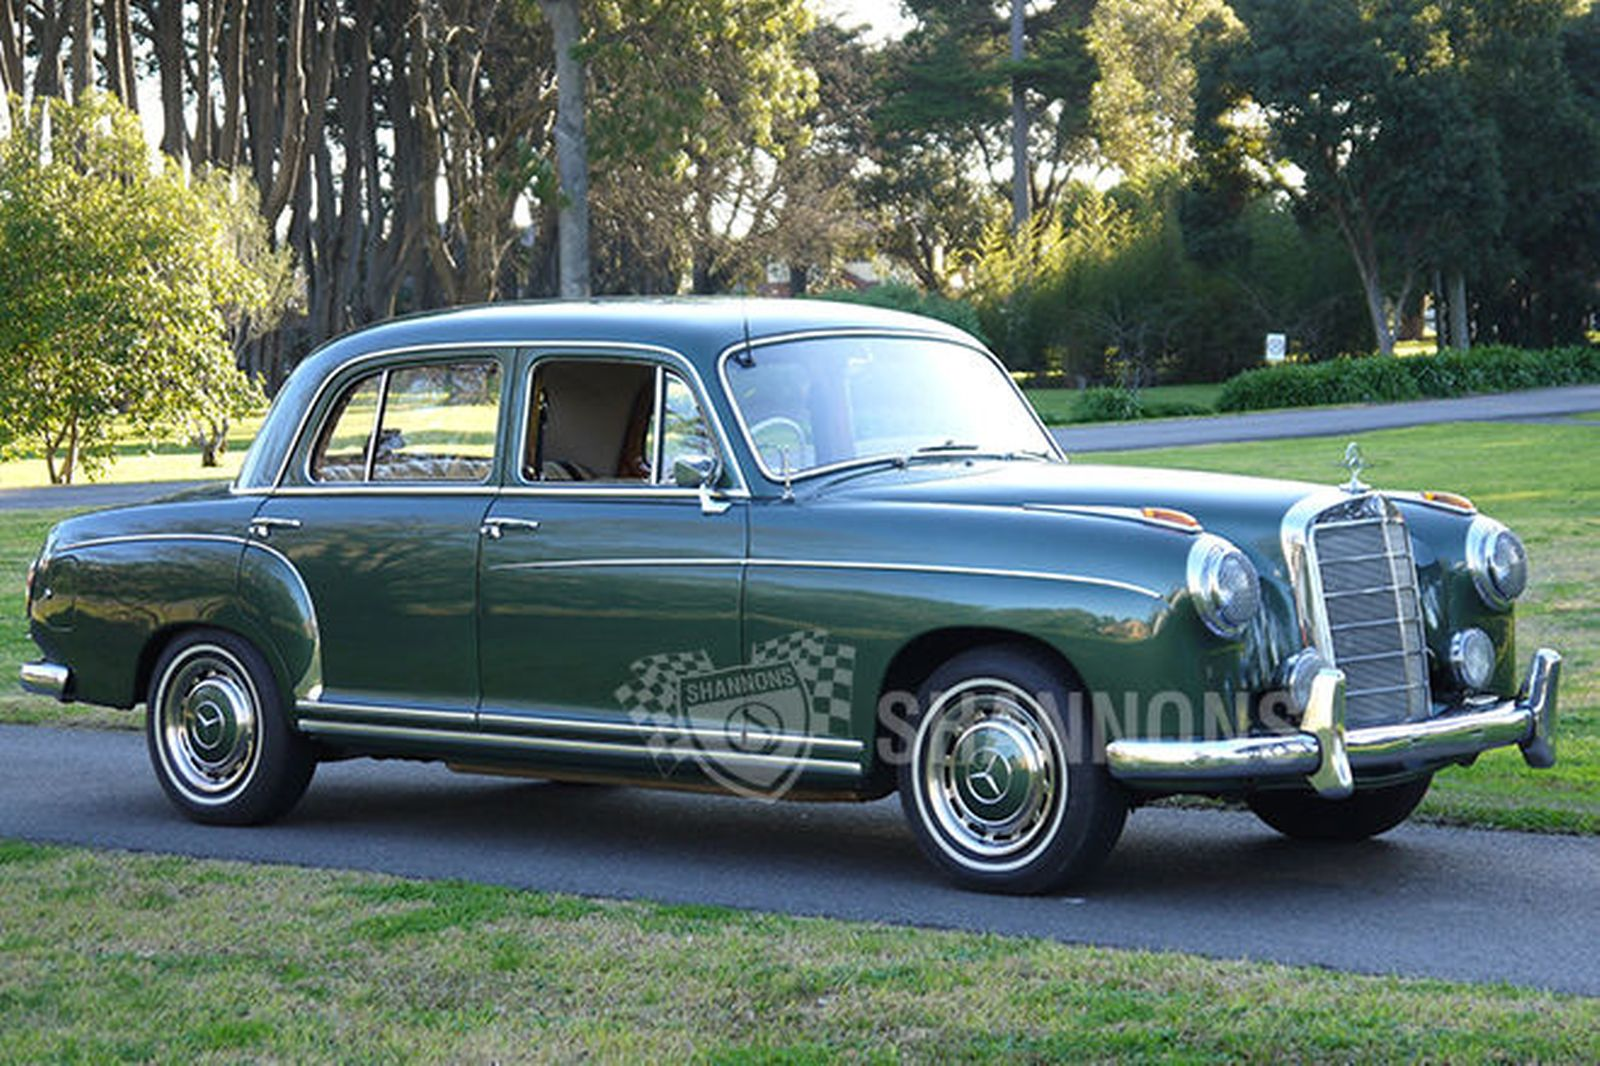 1958 mercedes benz 220 photos informations articles for 1958 mercedes benz 220s for sale